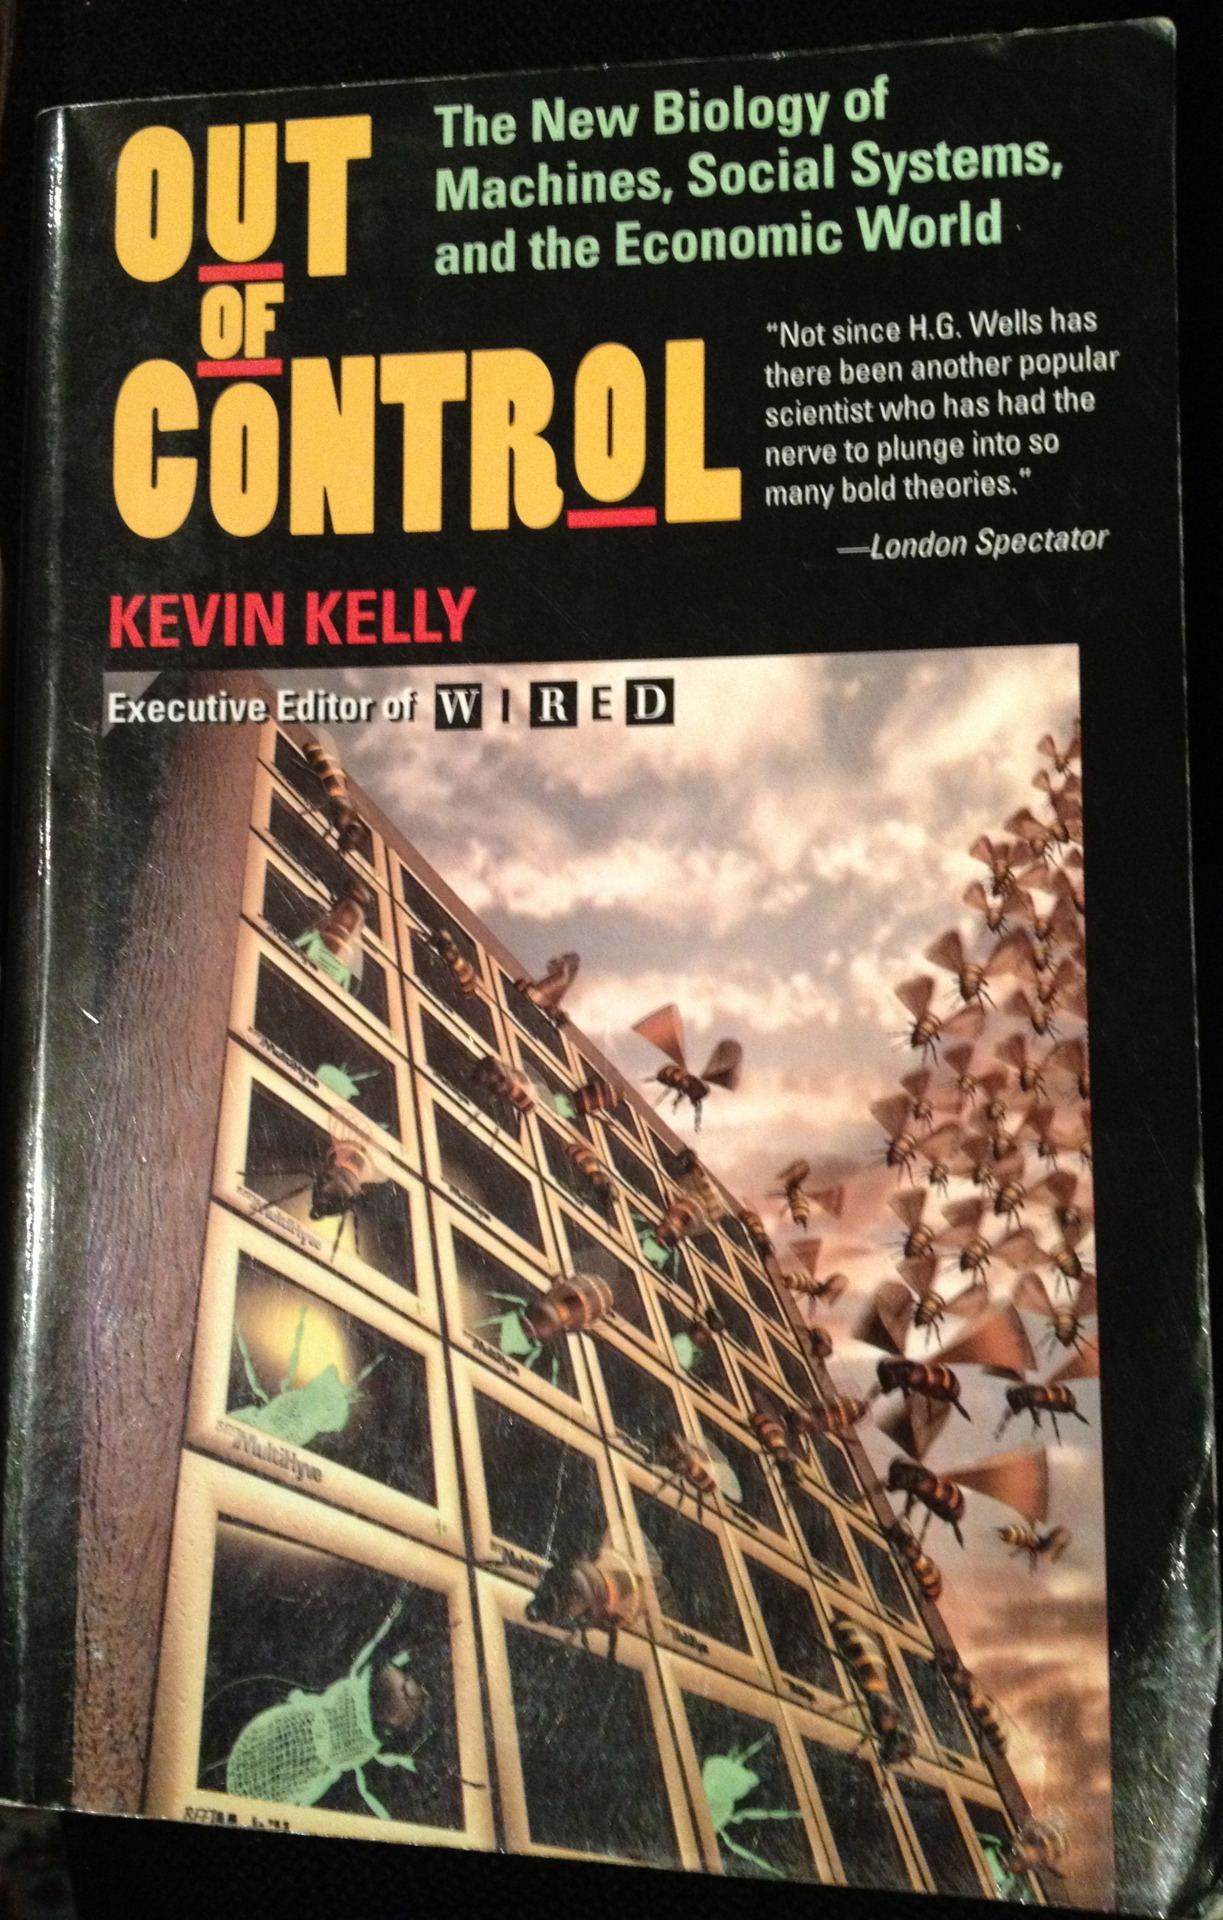 "This prescient book, published in 1994 on the eve of the Web age, shaped a lot of my early thinking about technology and media (as did  Stewart Brand's book about the M.I.T. Media Lab ).  Kevin Kelly  was the editor of  Wired  and previously the  Whole Earth Review . The book touched on topics that were strange then, but now more familiar: the wisdom of crowds, the hive mind, gamification, distributed computing and what Kelly called ""the marriage of the born and the made.""   For the world of our own making has become so complicated that we must turn to the world of the born to understand how to manage it. That is, the more mechanical we make our fabricated environment, the more biological it will eventually have to be if it is to work at all. Our future is technological; but it will not be a world of gray steel. Rather our technological future is headed toward a neo-biological civilization.       [Originally posted on my discontinued This Old Book Tumblr.]"